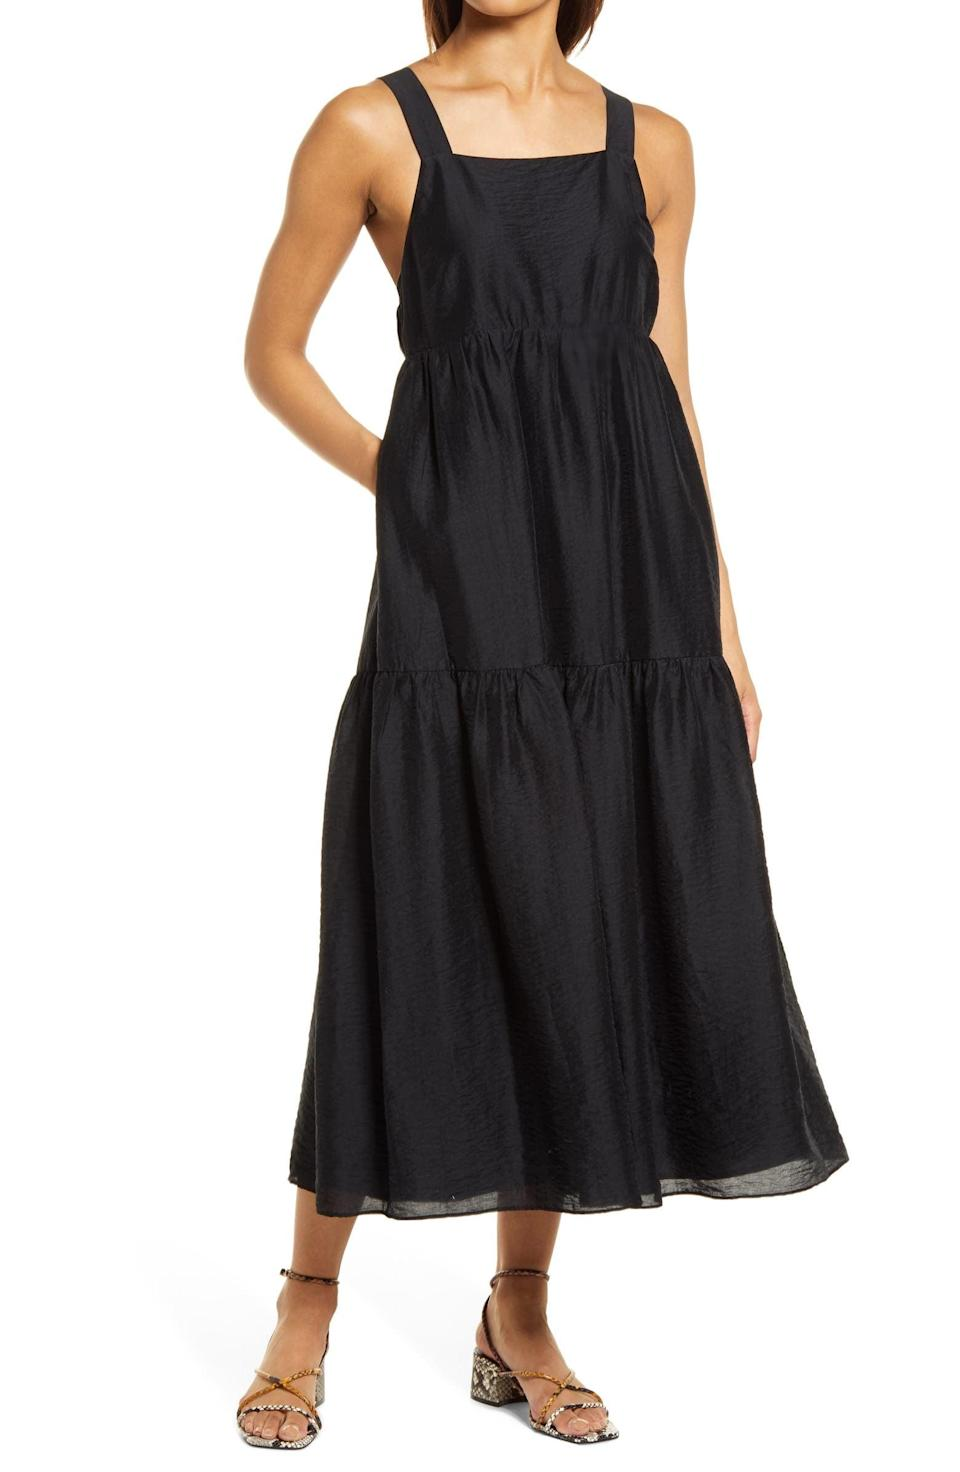 <p>The lustrous fabric of this <span>Halogen Halter Neck Tiered Maxi Dress</span> ($89) makes it suitable for evening wear, but pair it with some slides and it'll absolutely work for daytime activities, too. We love the tiered skirt, which enhances the breezy silhouette.</p>